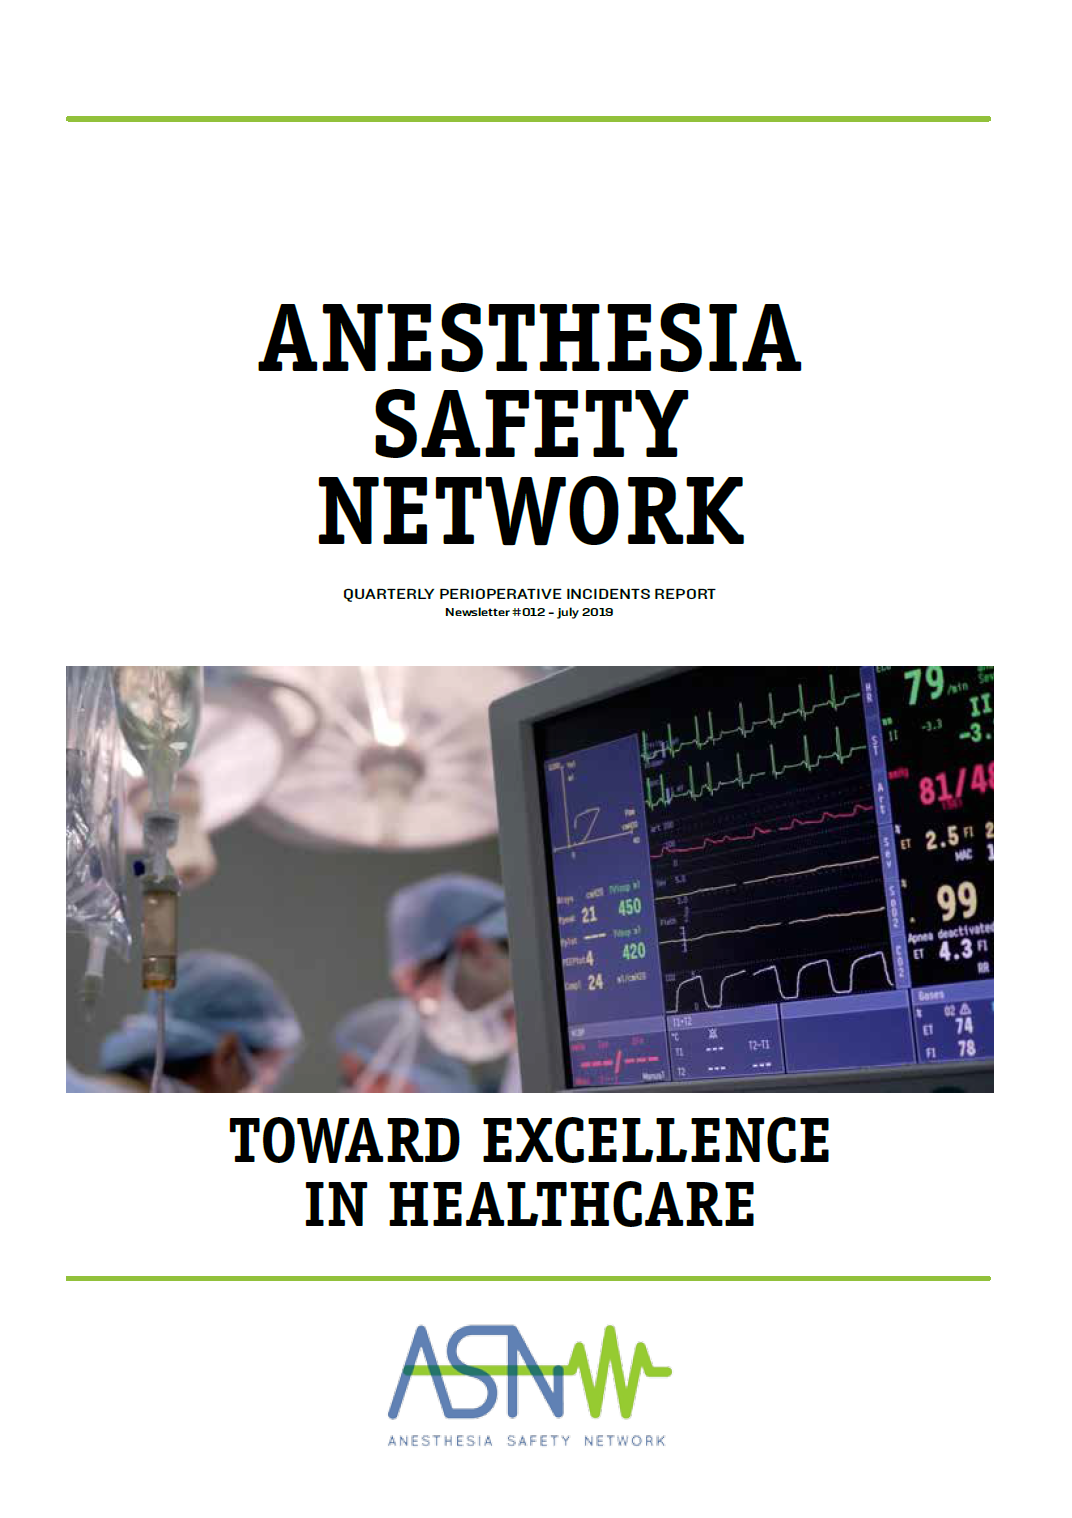 Anesthesia Safety Network Newsletter July 2019